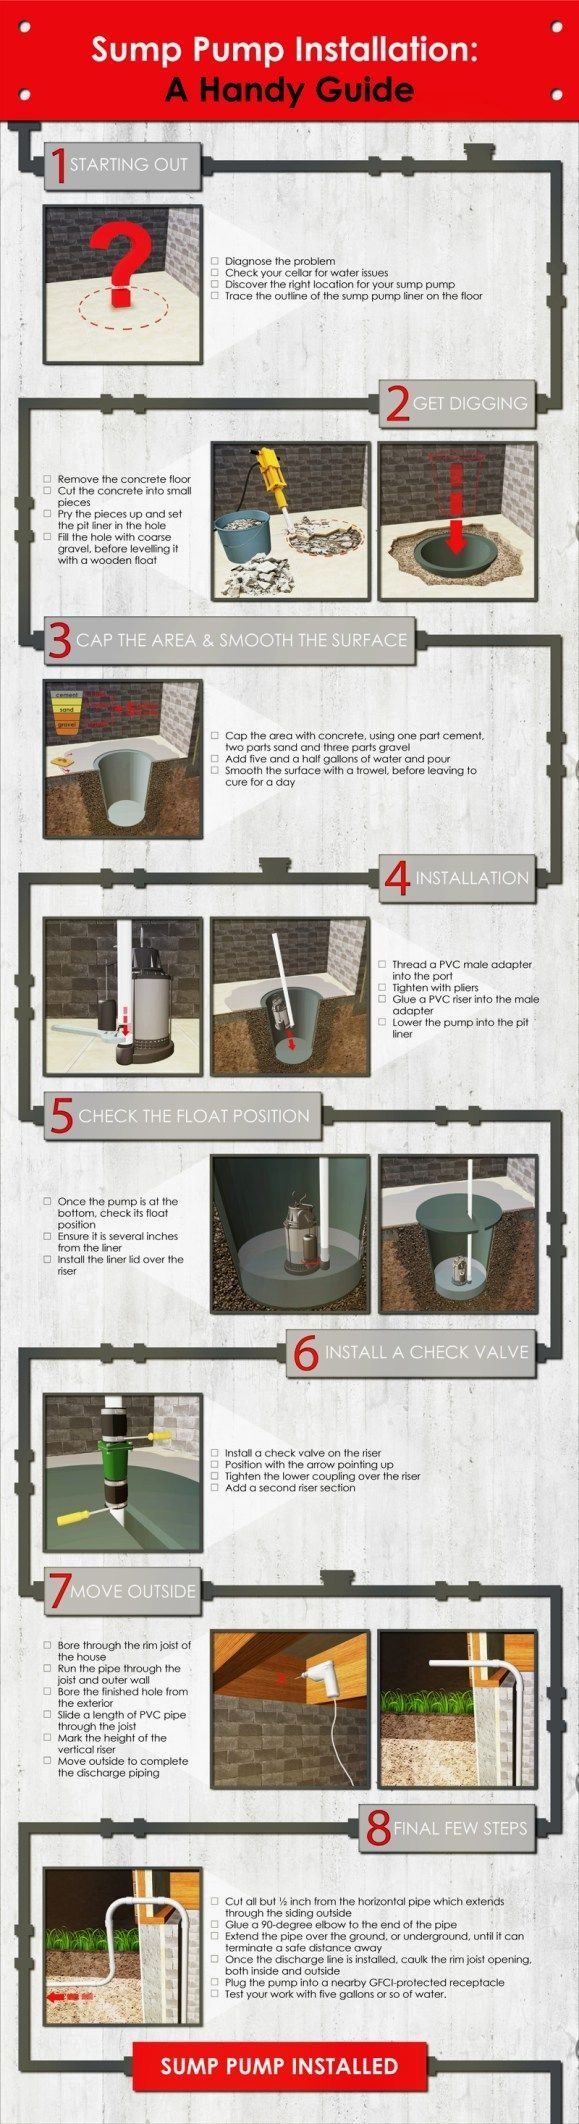 Updated July 24 2017 I Like To Think Of The Sump Pump Diagram As An All E Sump Pump Installation Sump Pump Sump Pit